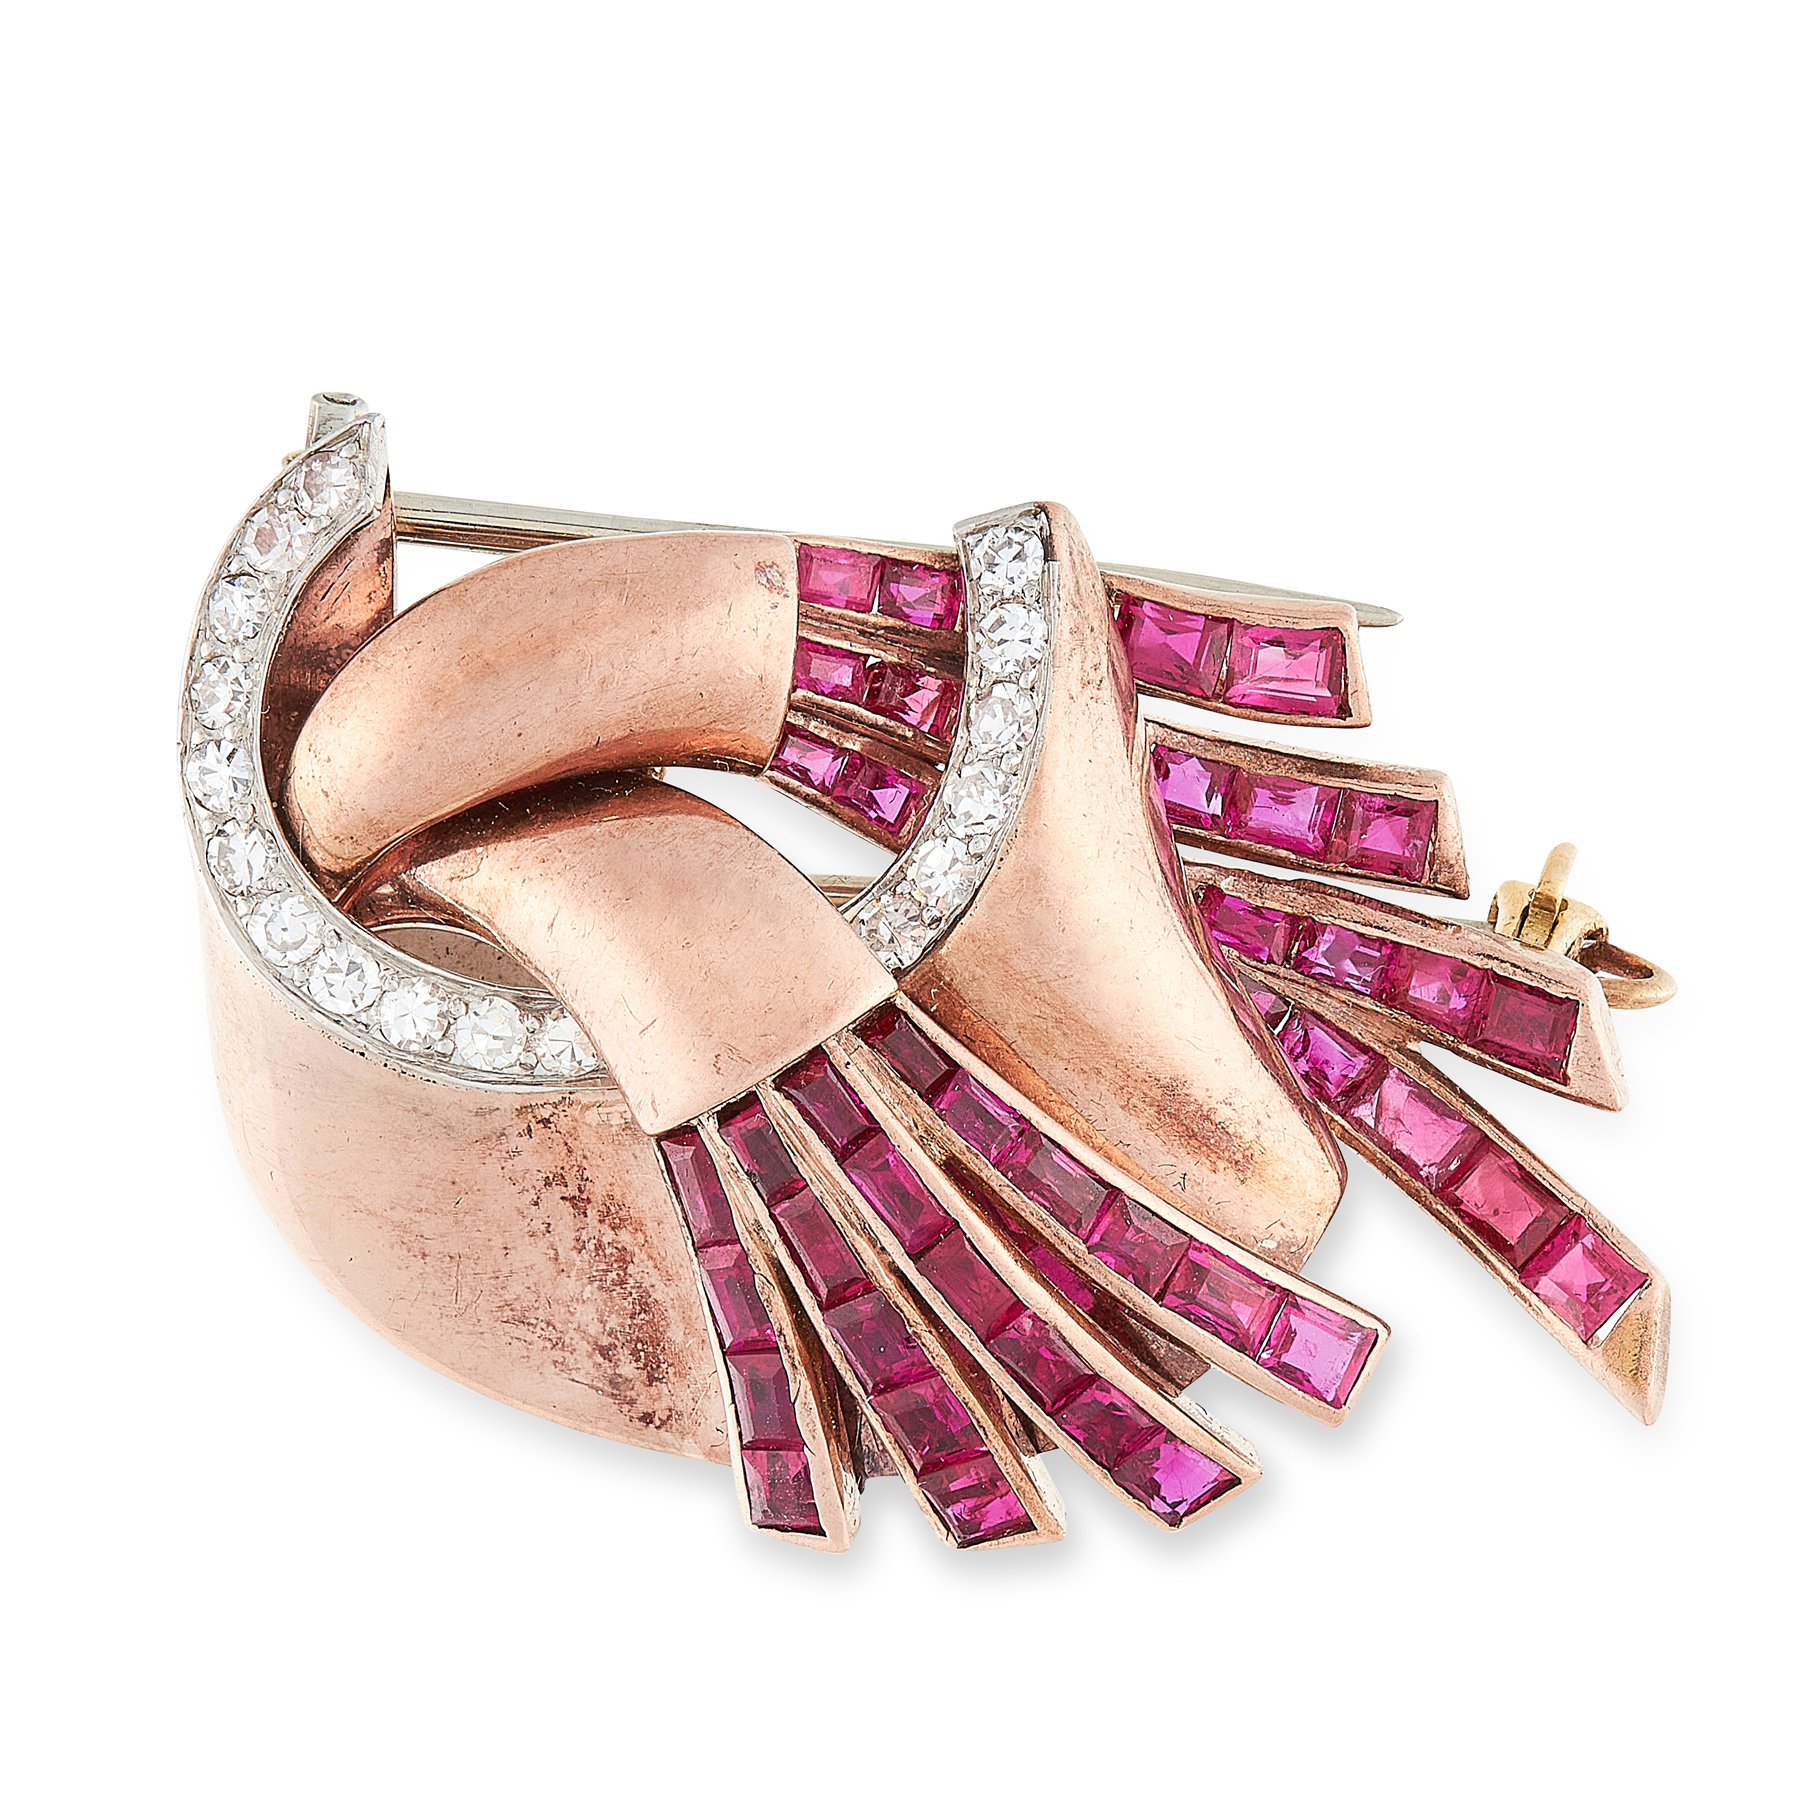 A RETRO RUBY AND DIAMOND BROOCH, CIRCA 1940 in 18ct rose gold, of scrolling design, set with rows of